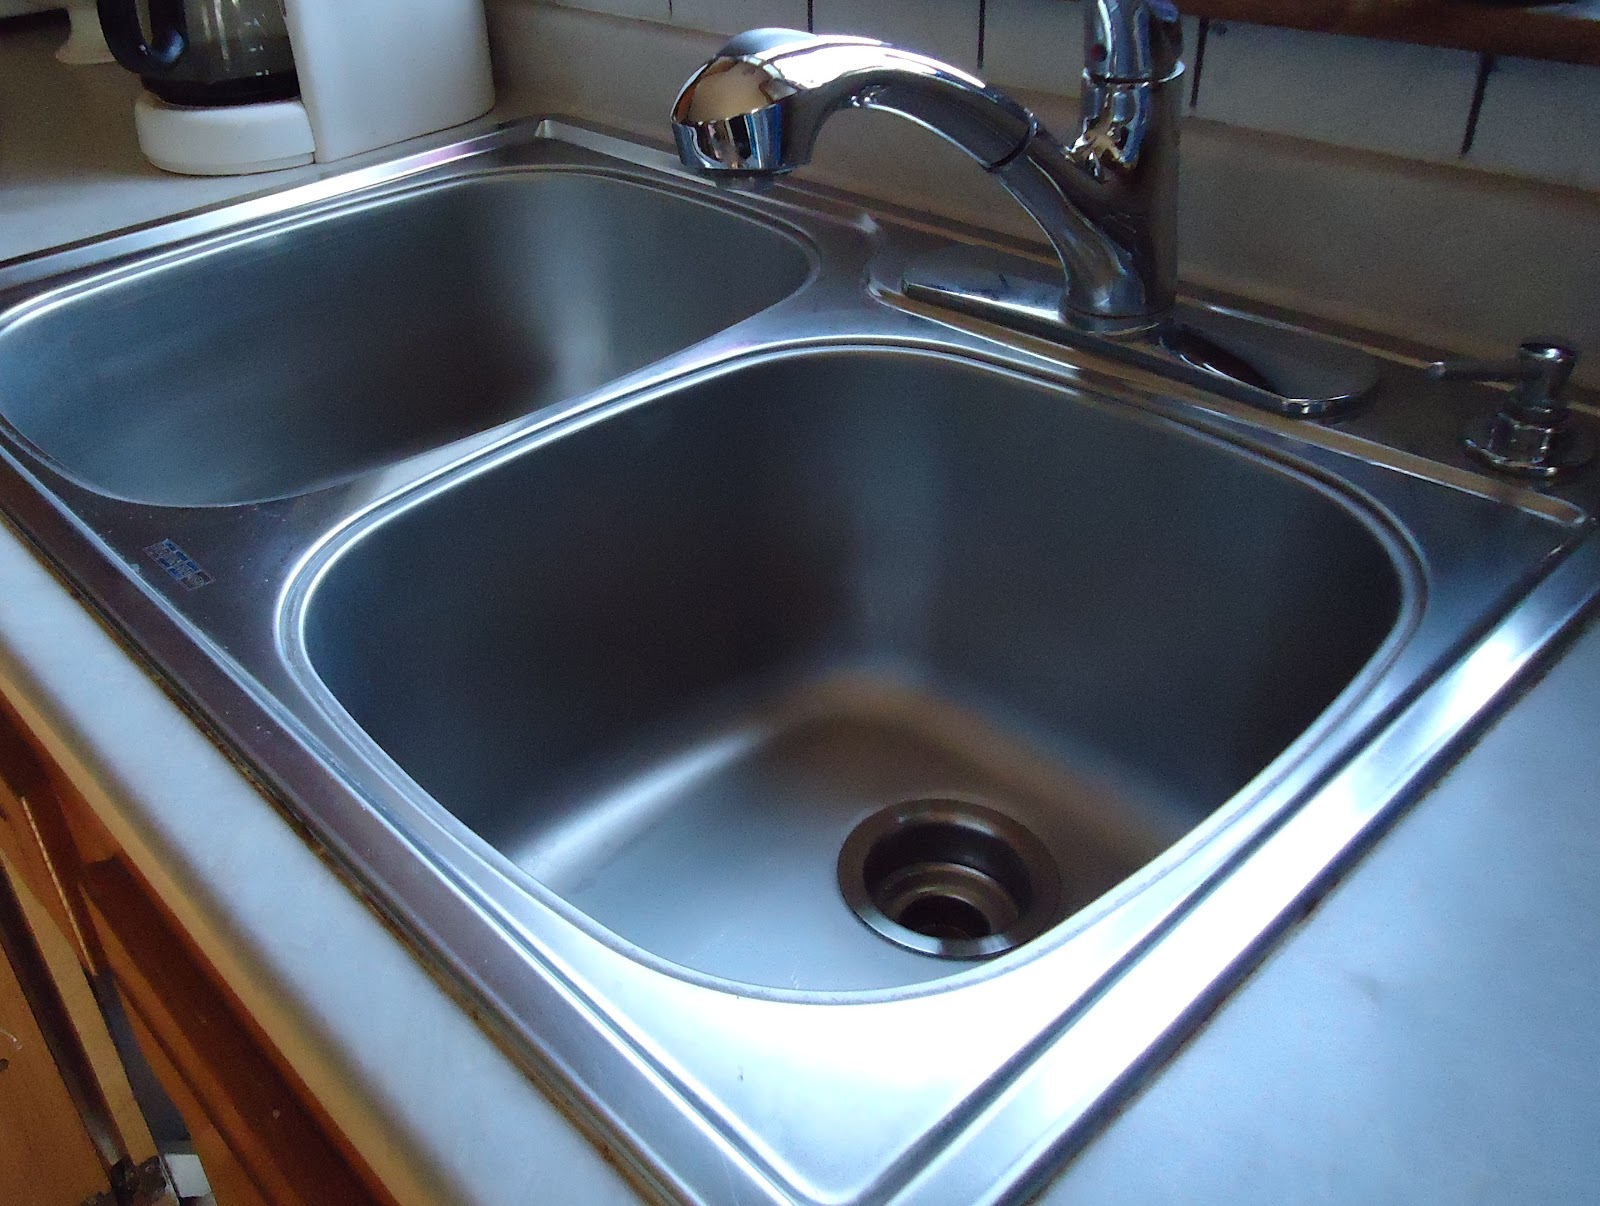 Easy peasy education shine your sink - How to clean bathroom sink drain ...